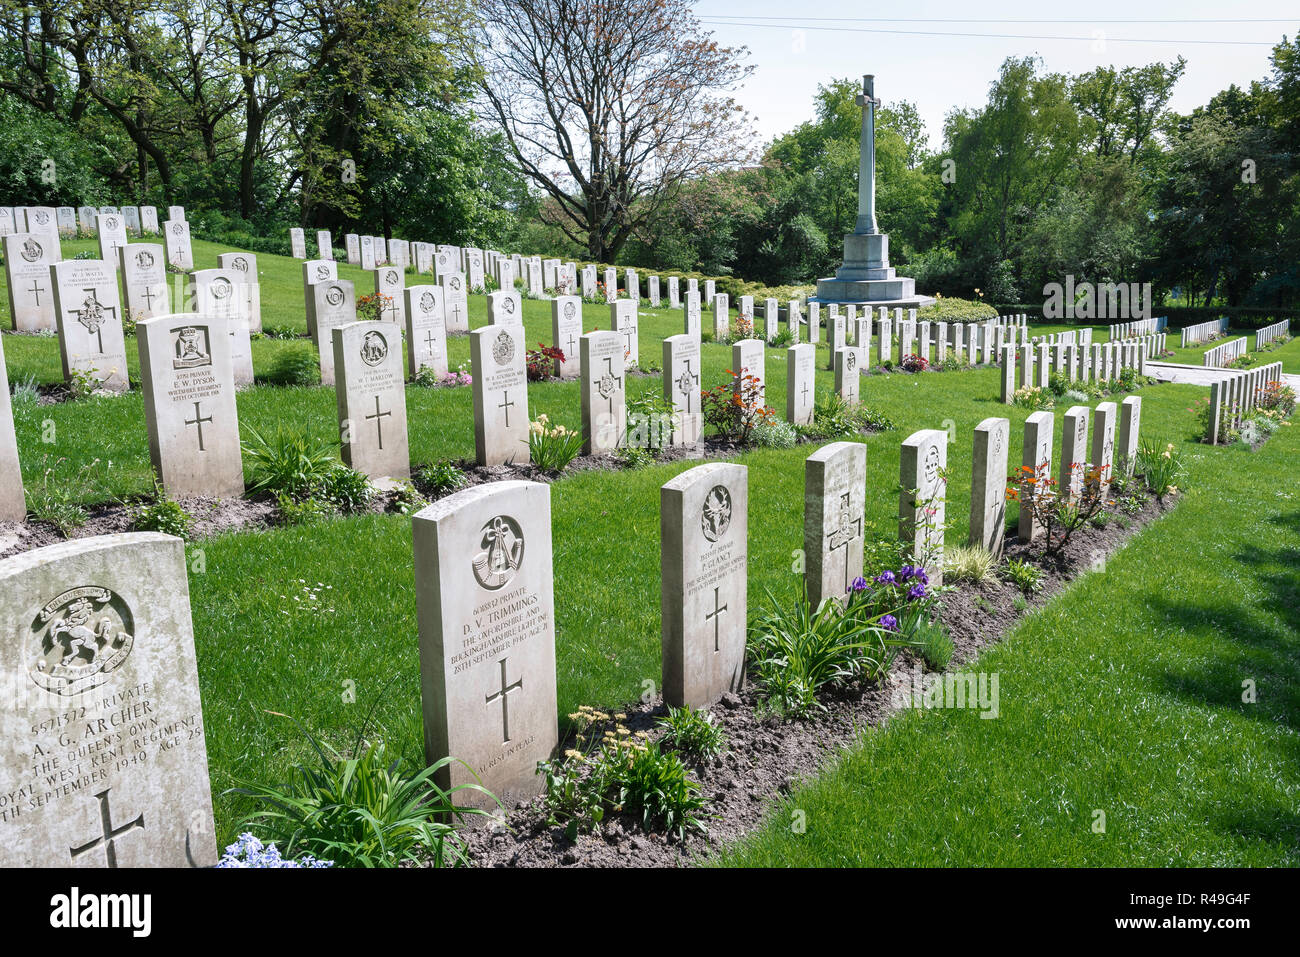 British Commonwealth war grave, view of headstones of British soldiers who fought in two world wars in the Garrison Cemetery in Poznan (Posen), Poland Stock Photo